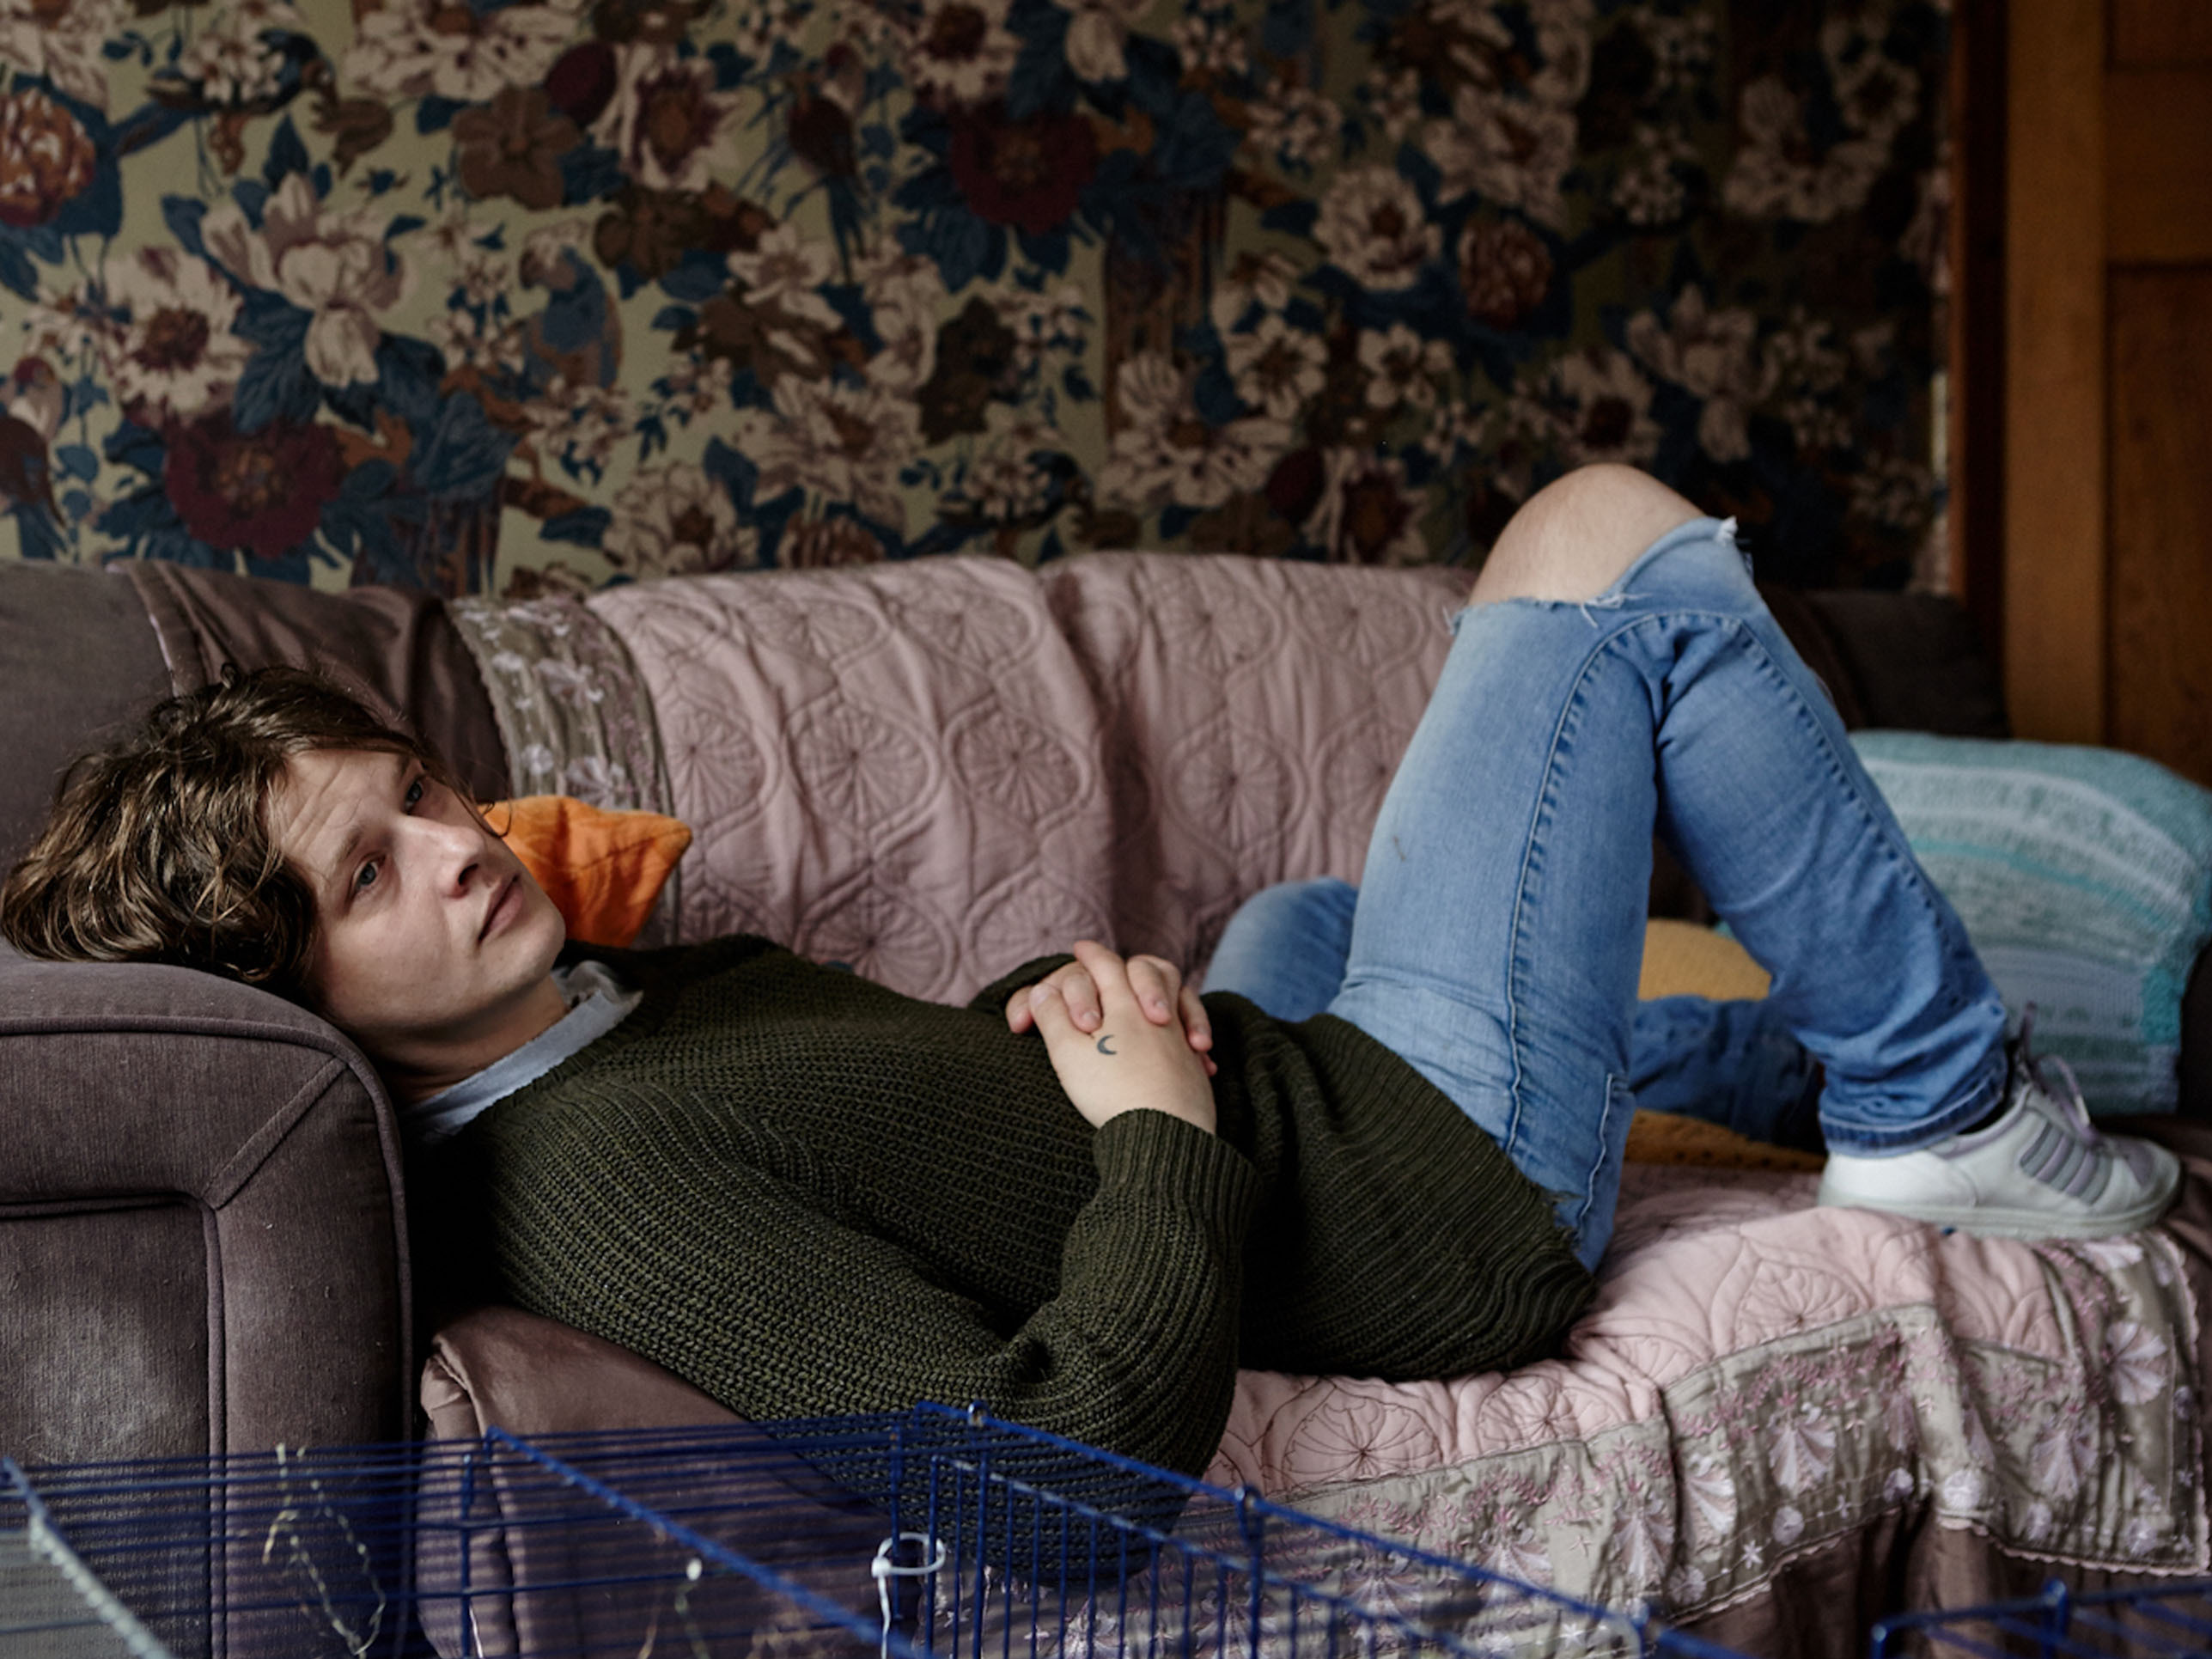 Bill Ryder-Jones' new album, <em>West Kirby County Primary</em>, is out now. (Rachel King/Courtesy of the artist)